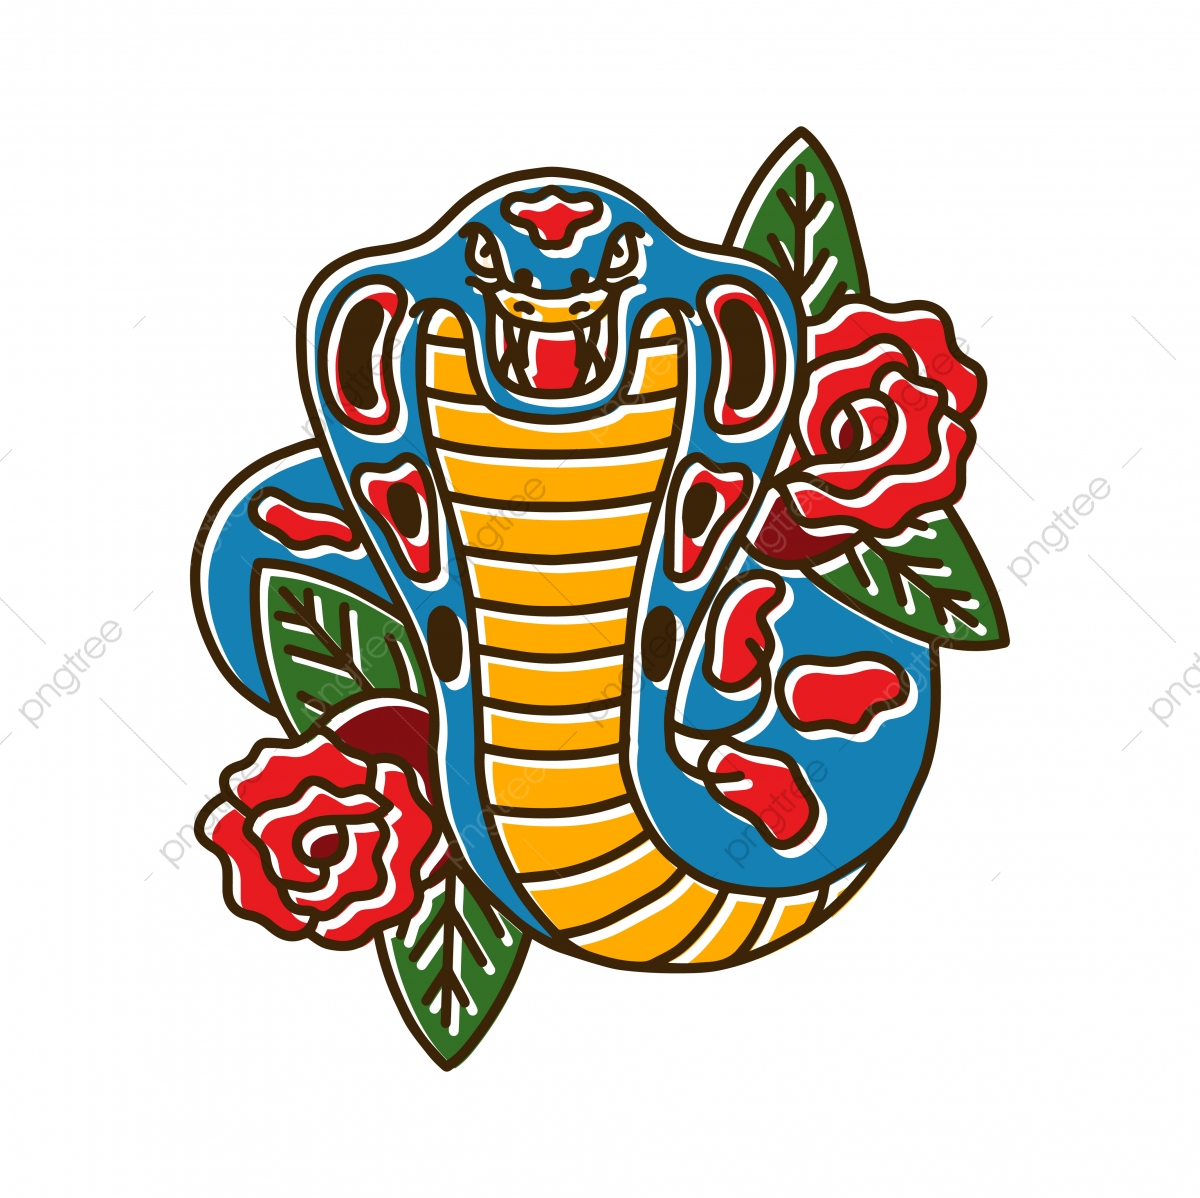 cobra png vector psd and clipart with transparent background for free download pngtree https pngtree com freepng cobra snake with rose 4052614 html